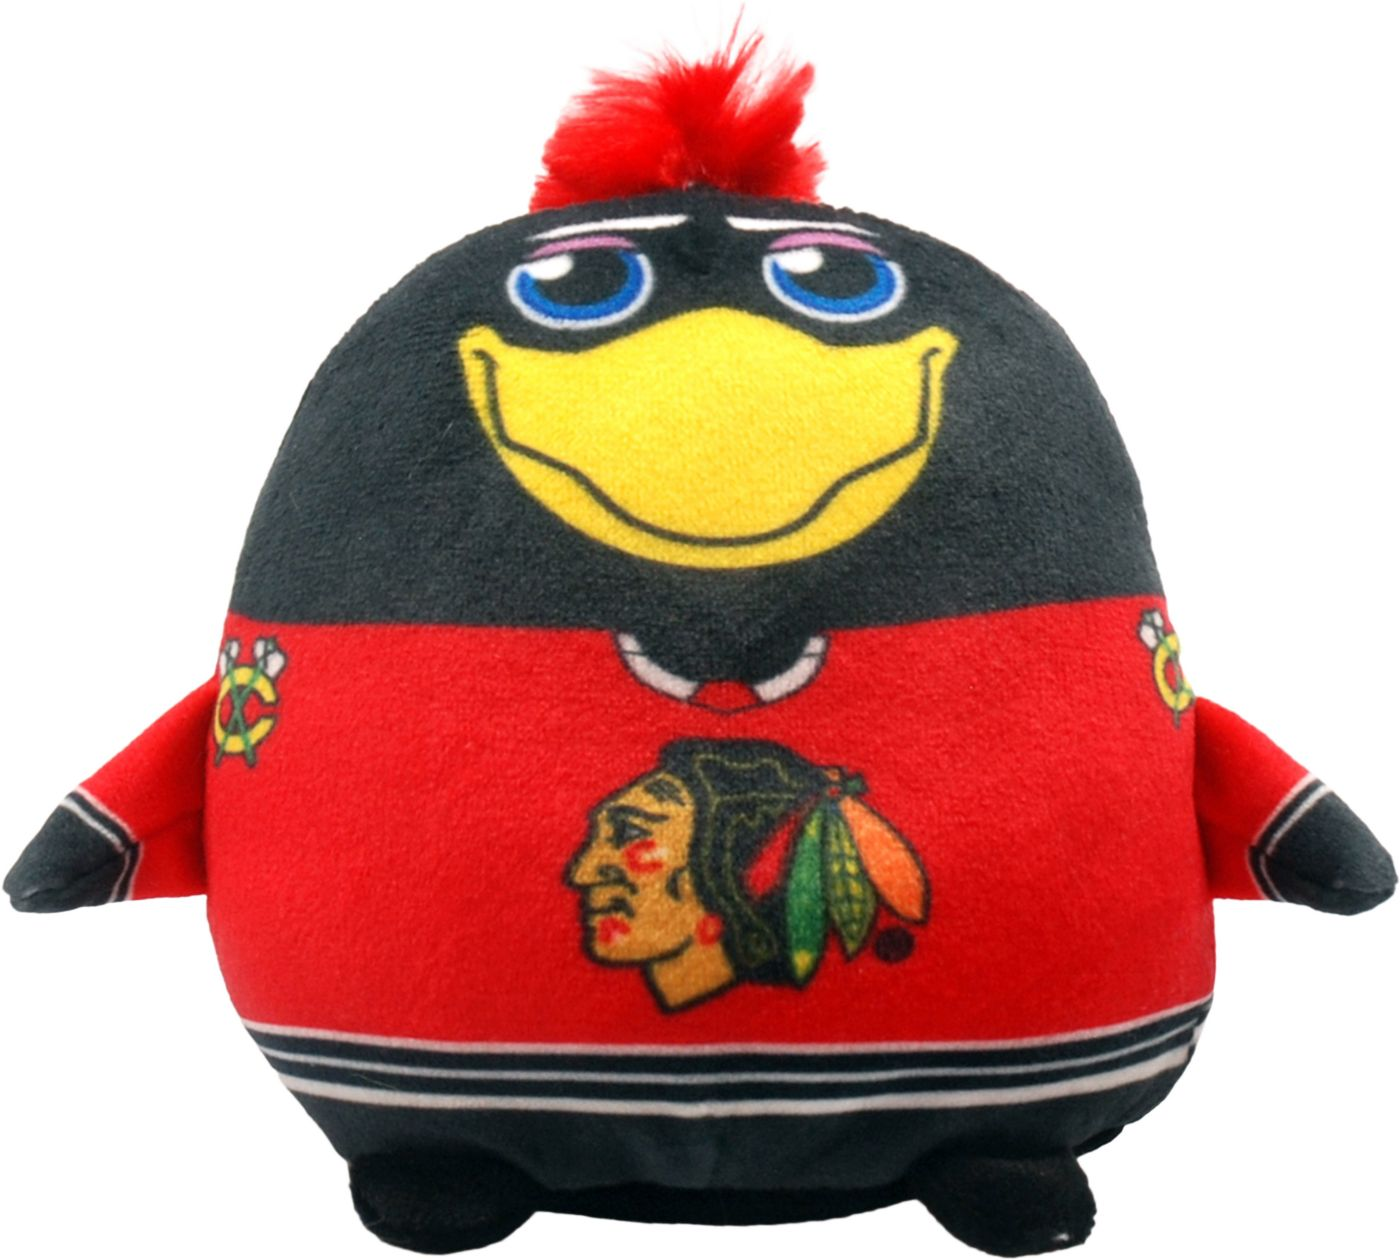 FOCO Chicago Blackhawks Mascot Smusher Plush